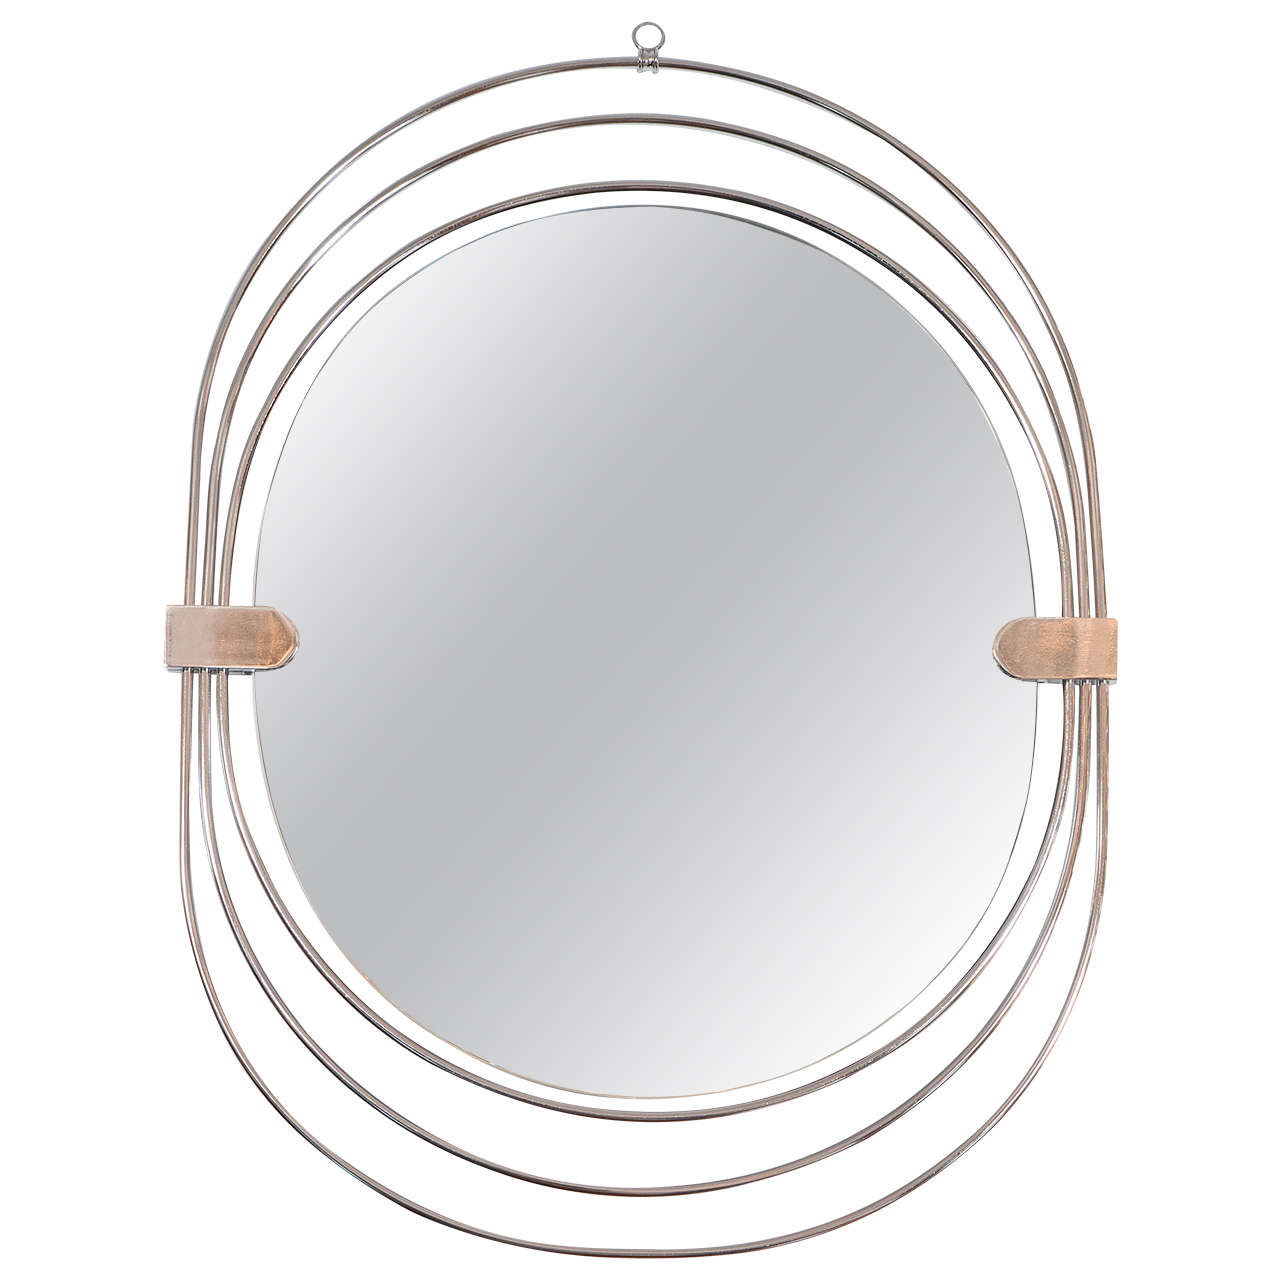 Polished Stainless Steel Mirrors For Sale